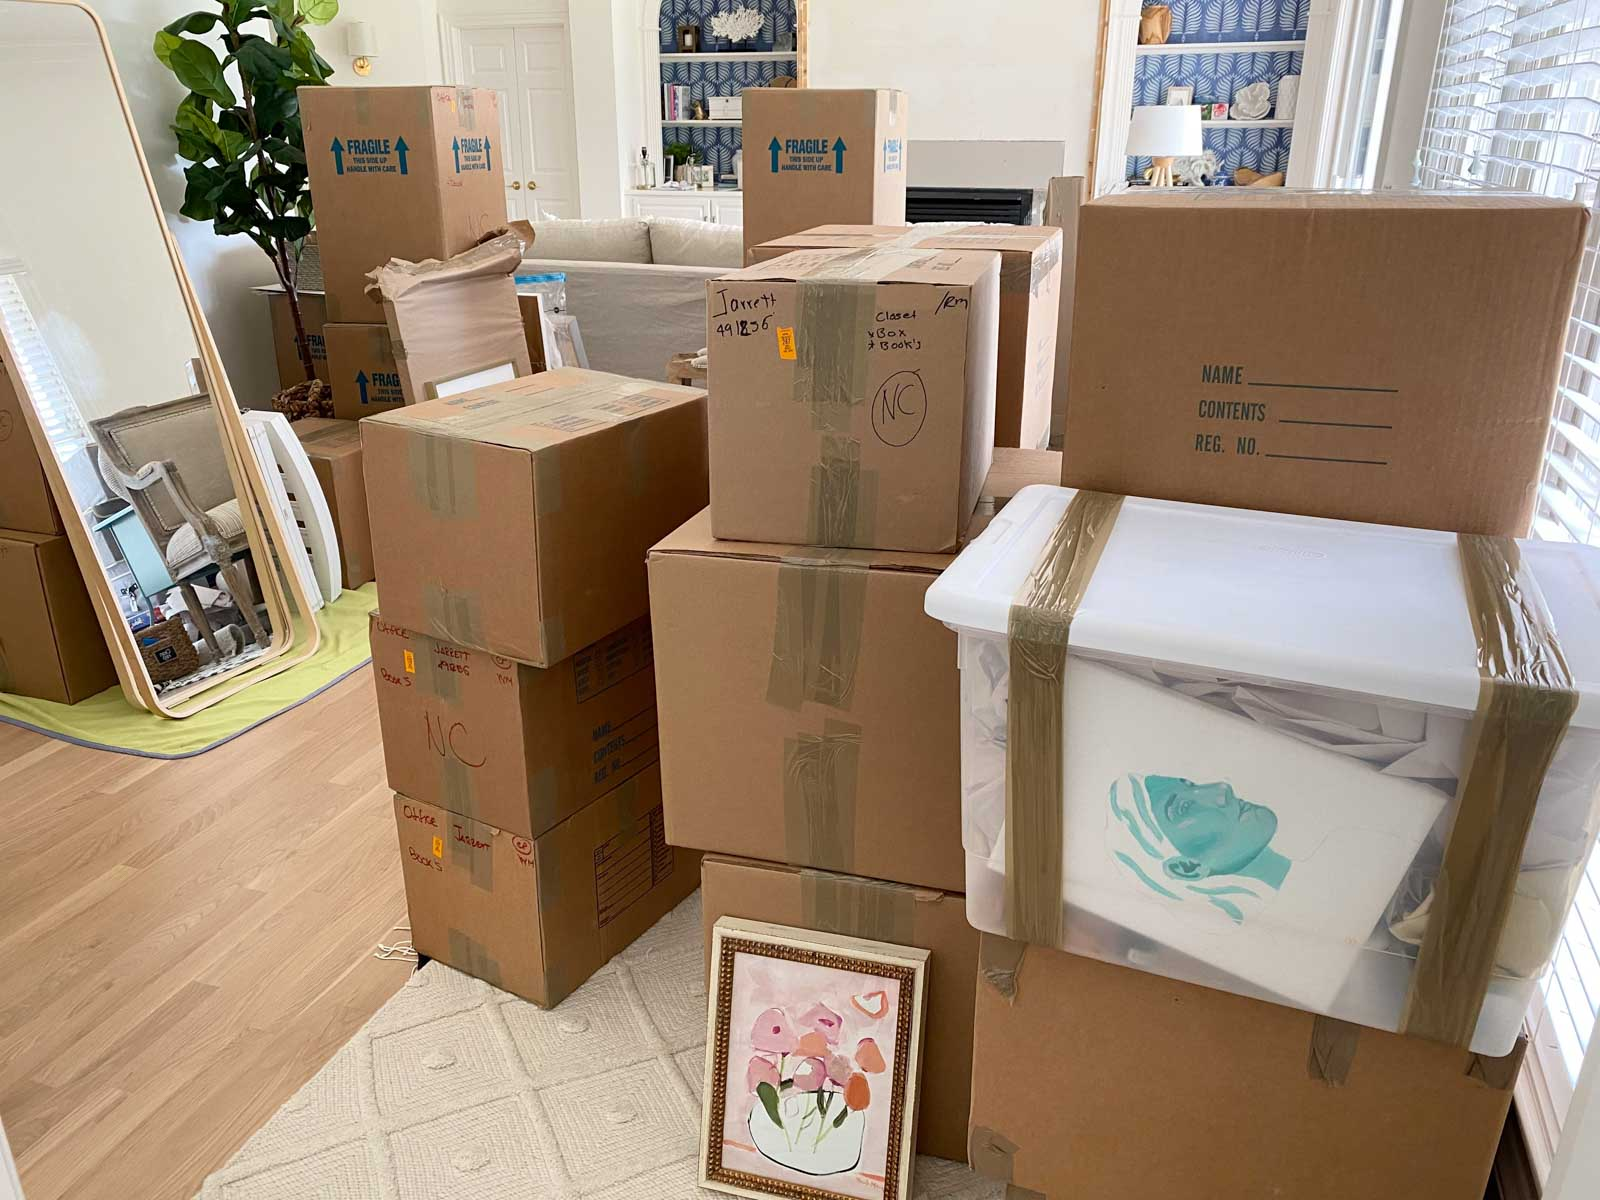 Lots of moving boxes to unpack!